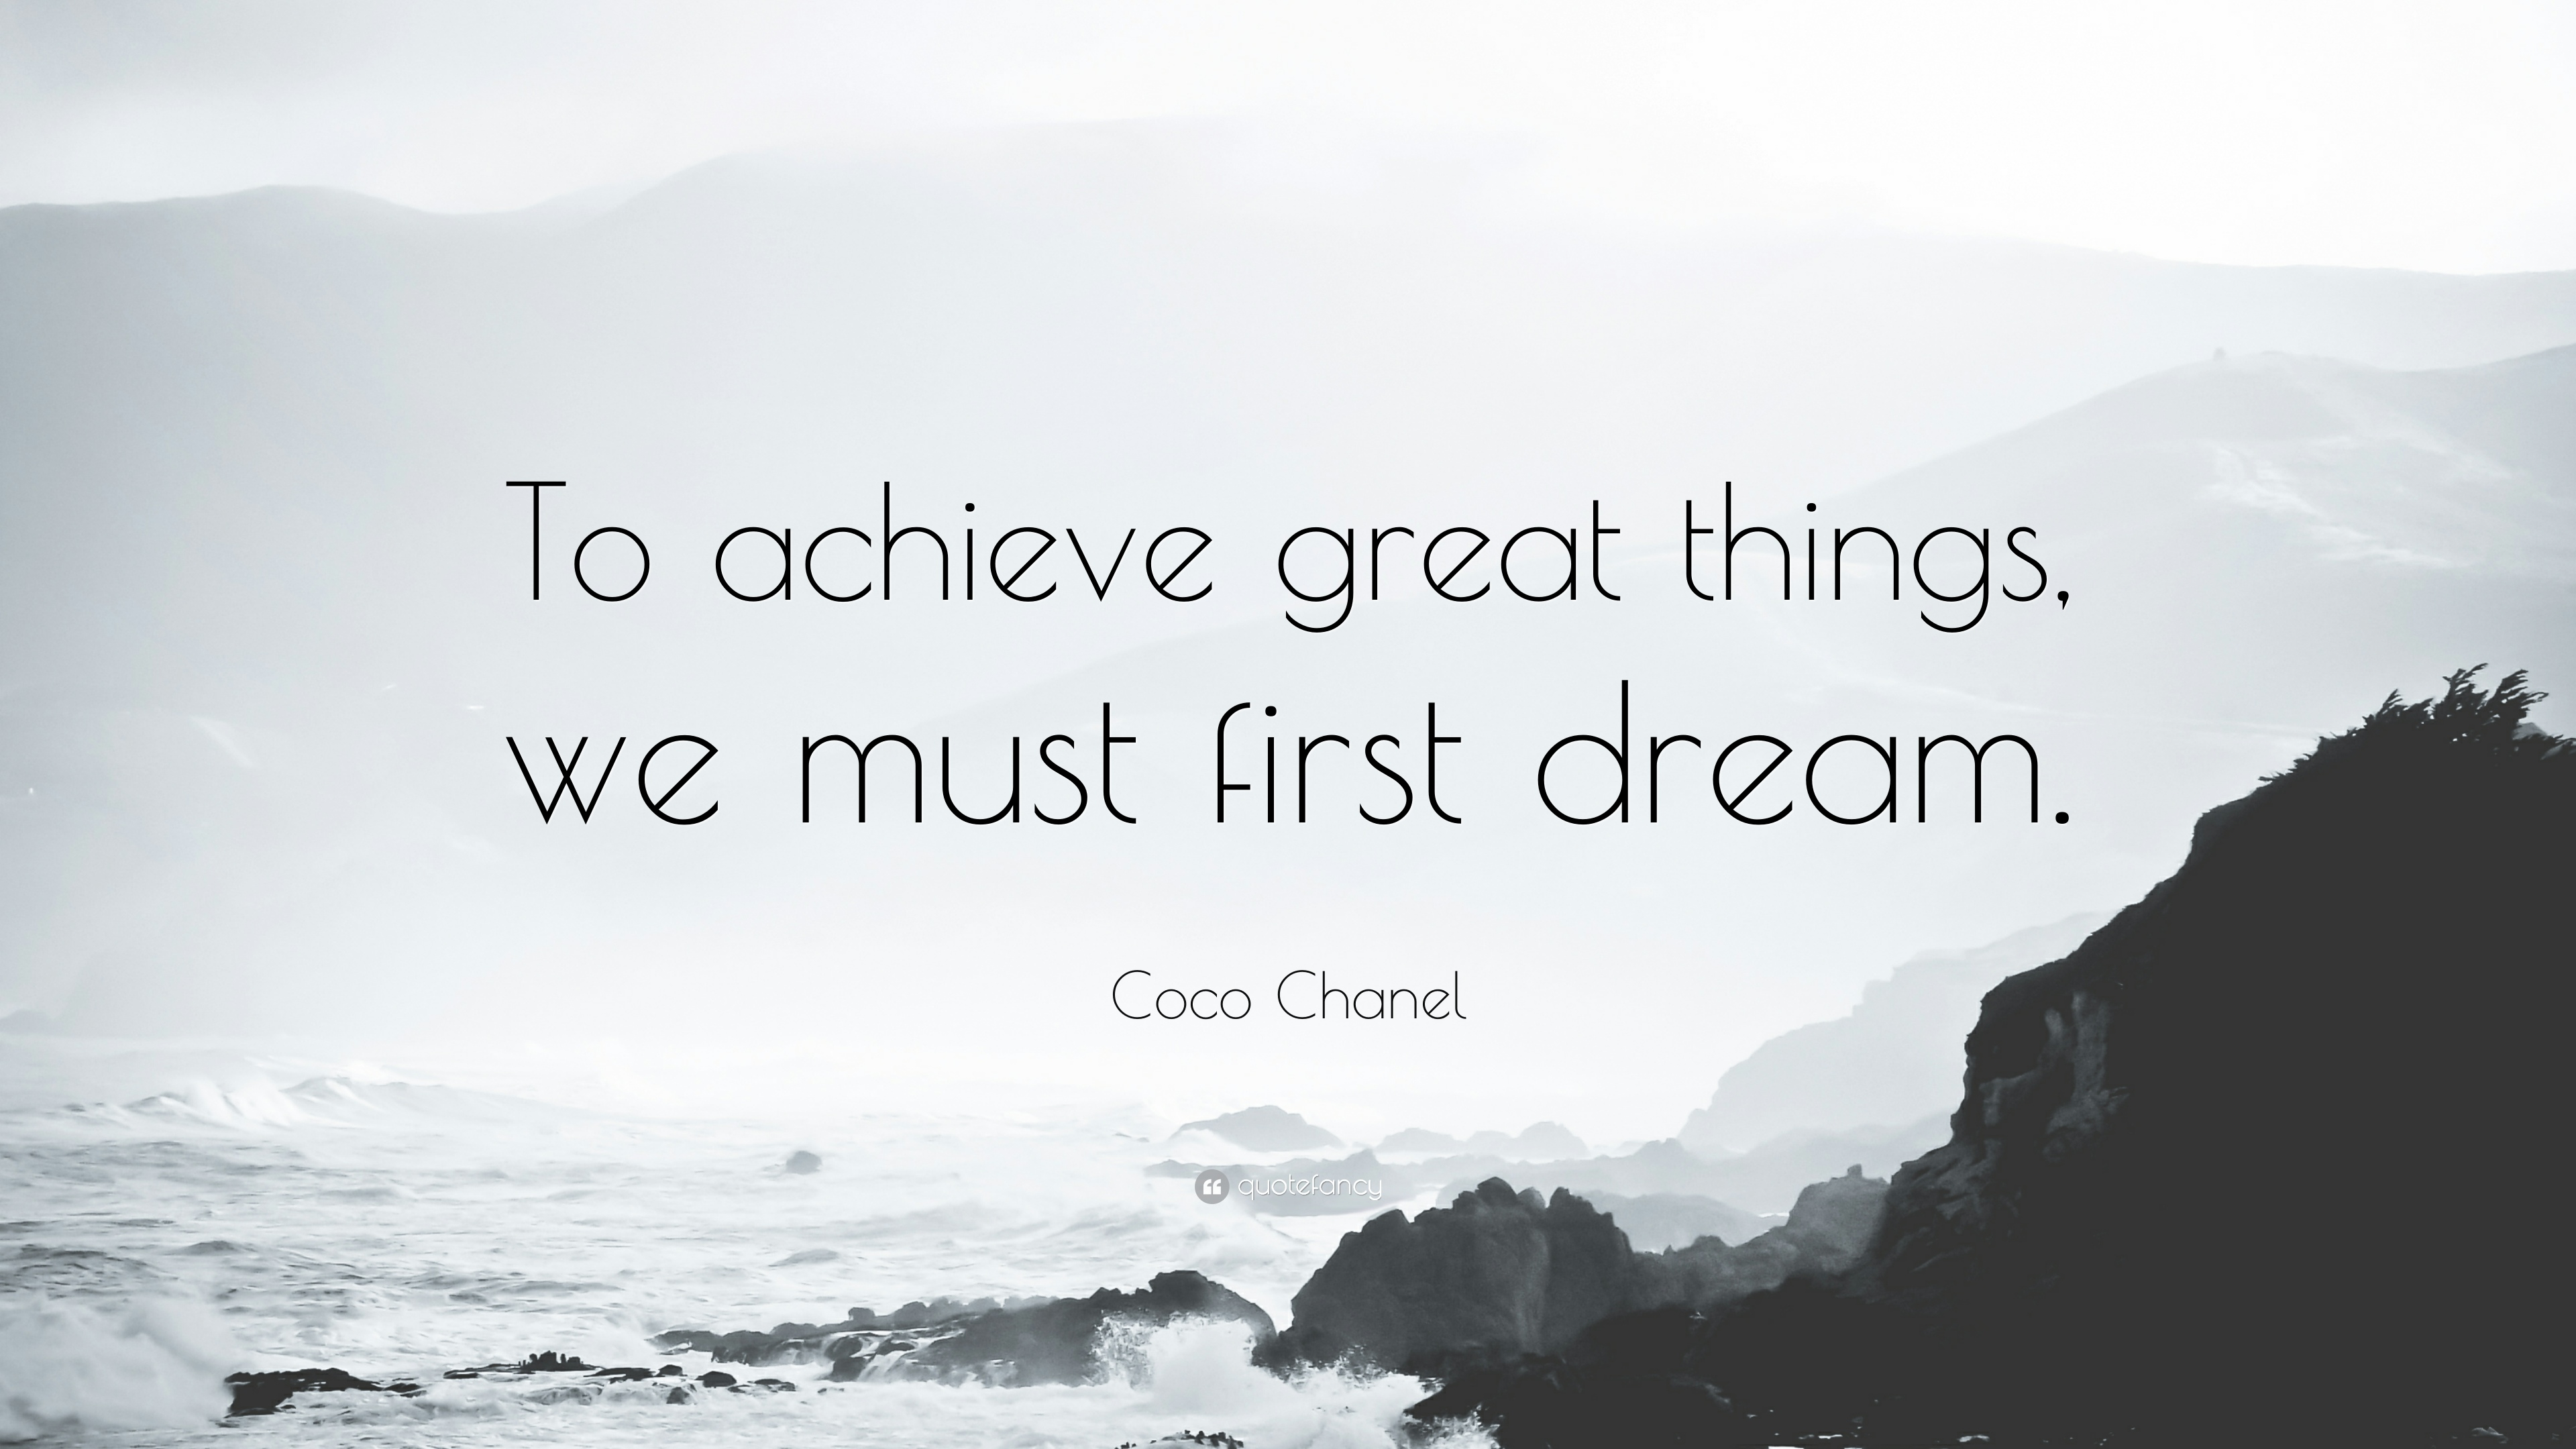 Coco Chanel Quote: U201cTo Achieve Great Things, We Must First Dream.u201d